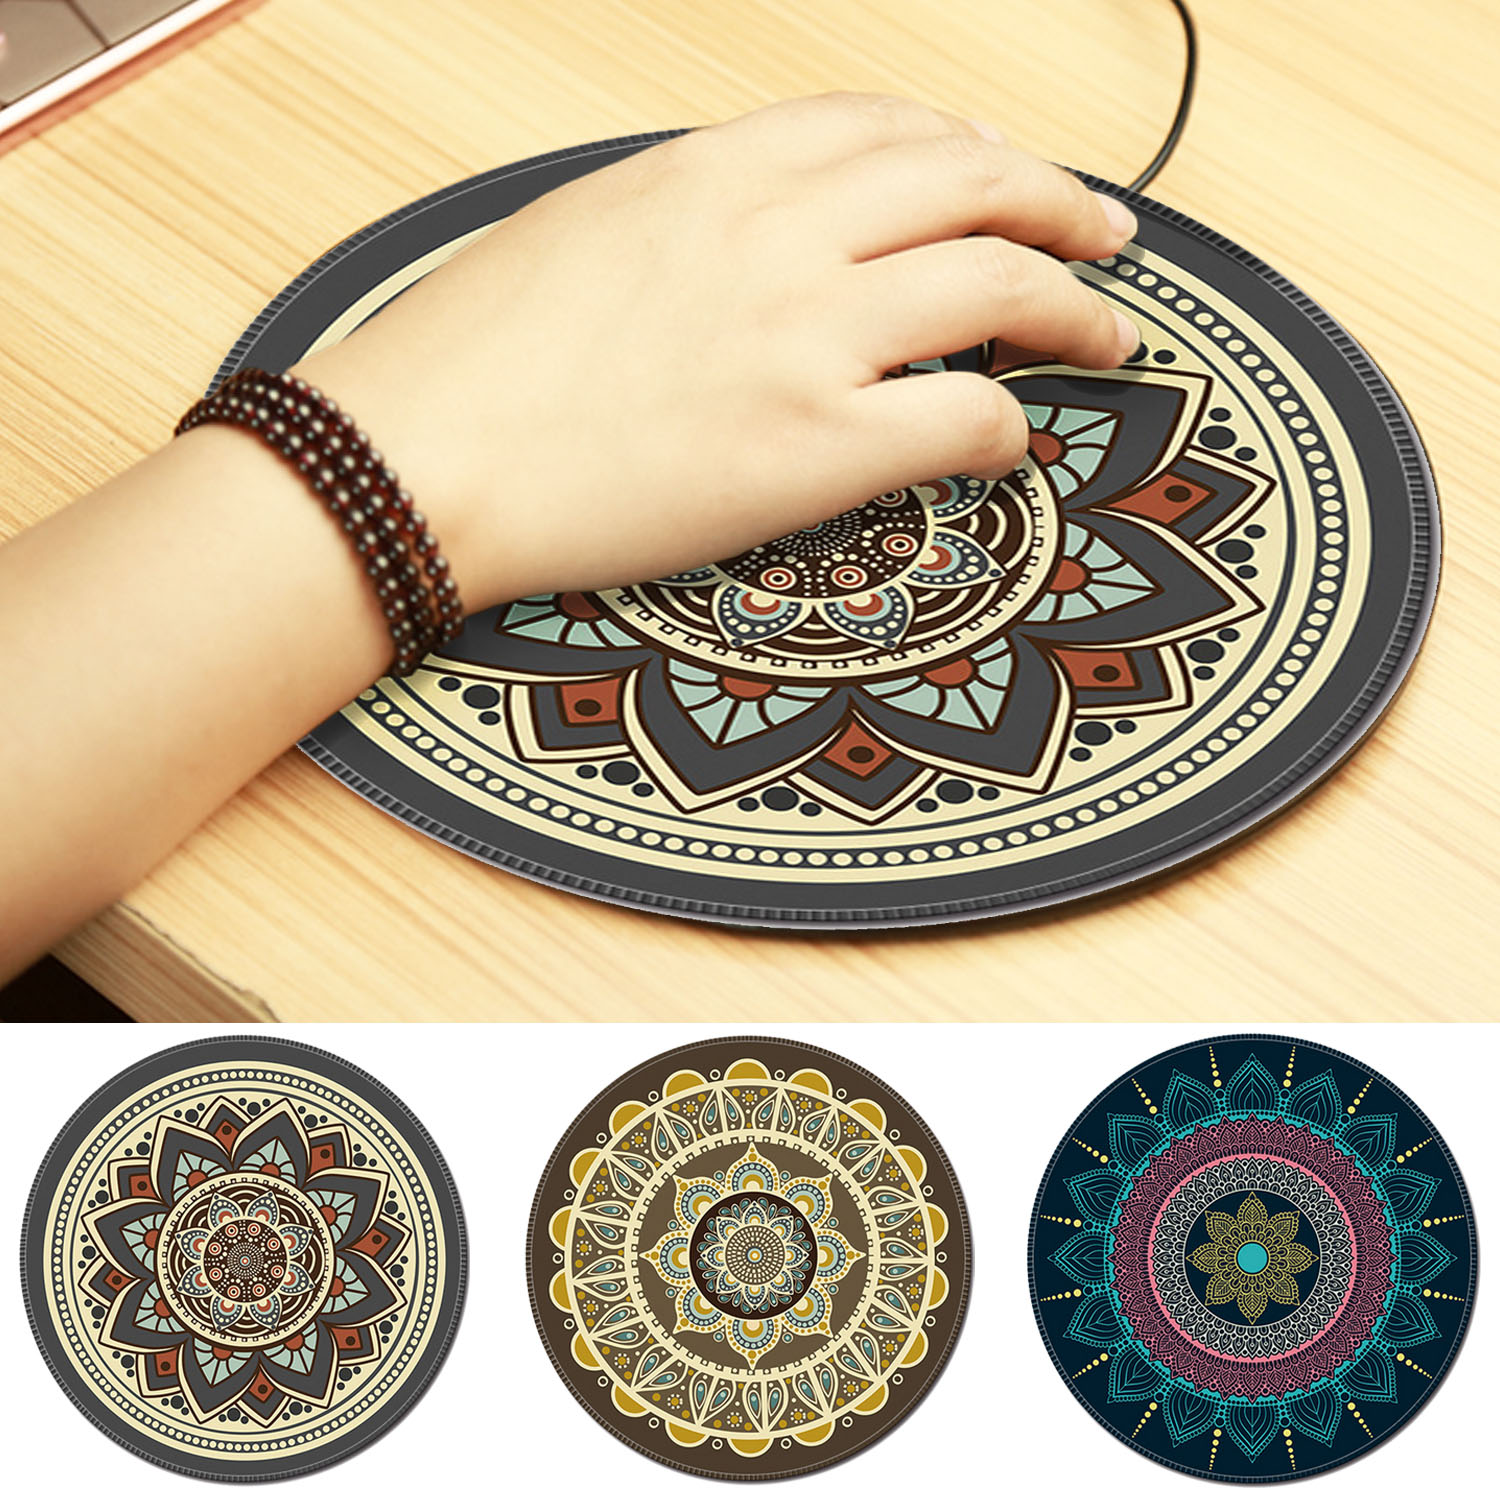 Nworld Vintage Bohemian Round Computer 3D Carpet Mouse Pad Mat Mousepad Anti Slip For Home Office PC Gaming LOL Overwatch CS GO